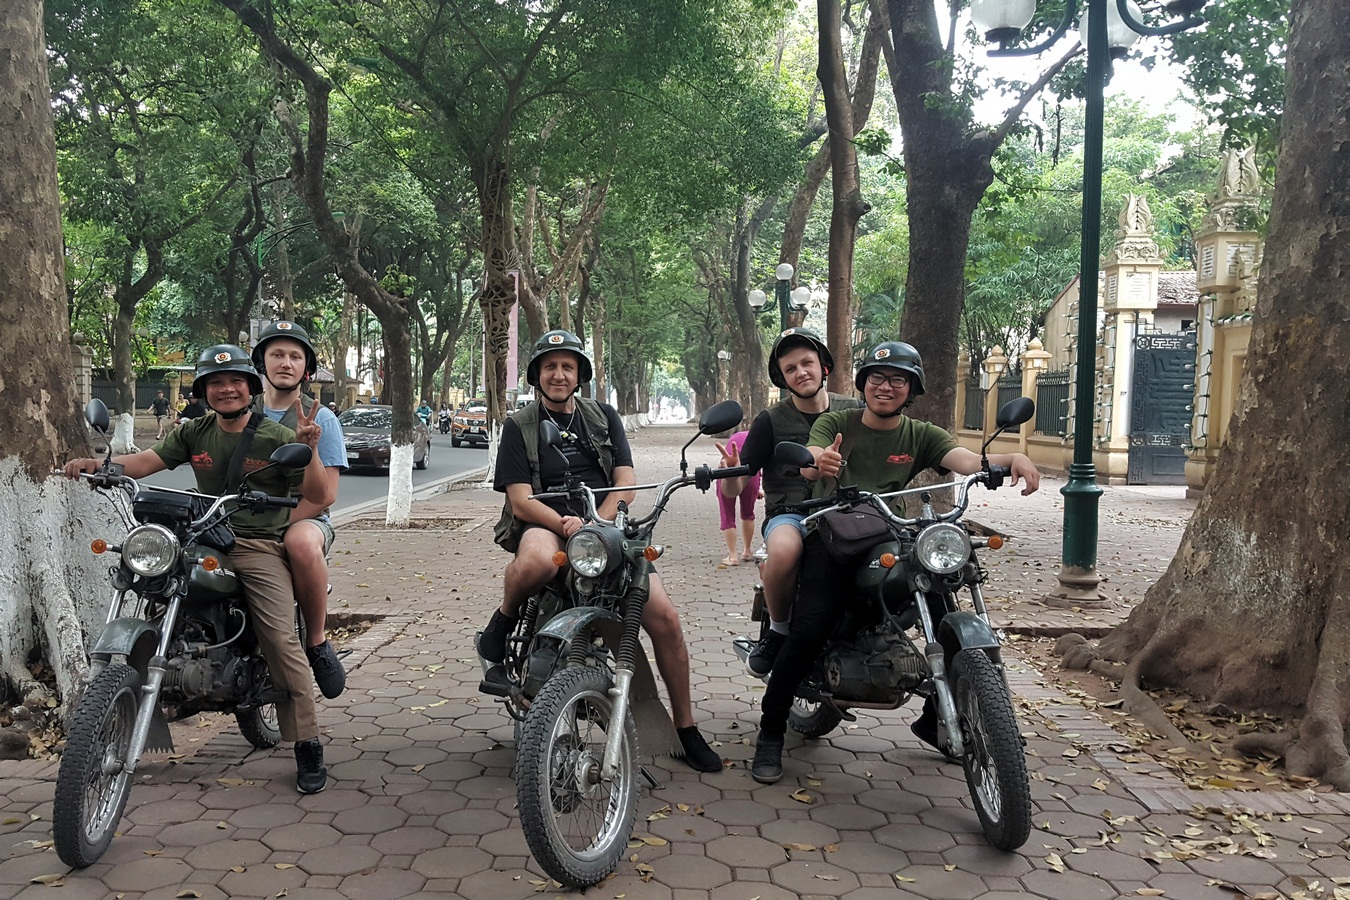 HANOI SCOOTER TOURS – FOOD, CULTURE, SIGHT & FUN: 4.5 HOURS